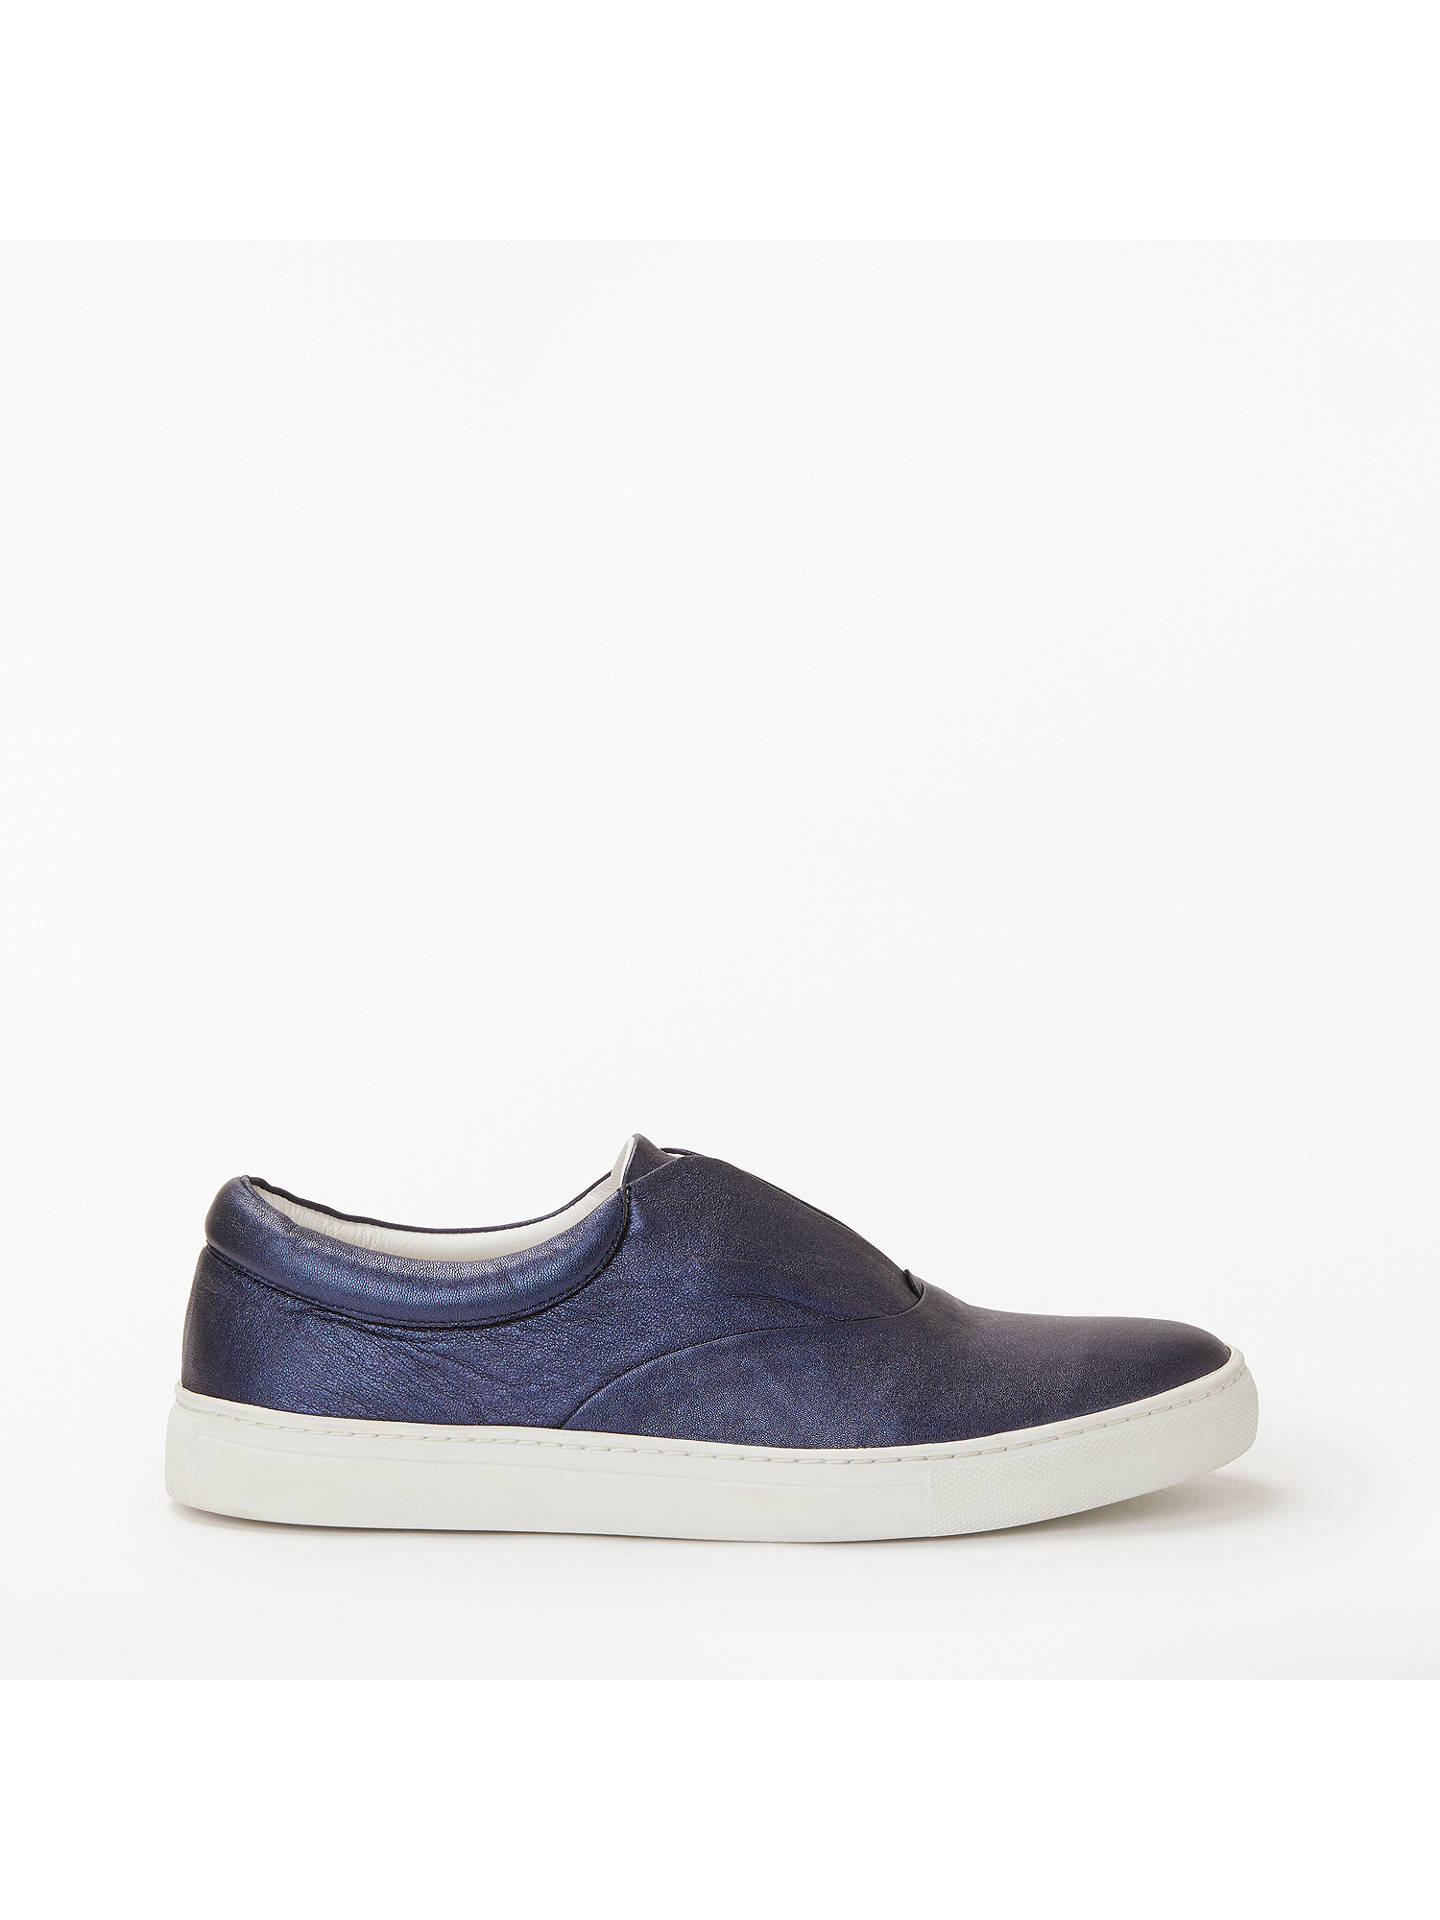 BuyBoden Metallic Slip On Trainers, Navy Leather, 4 Online at johnlewis.com